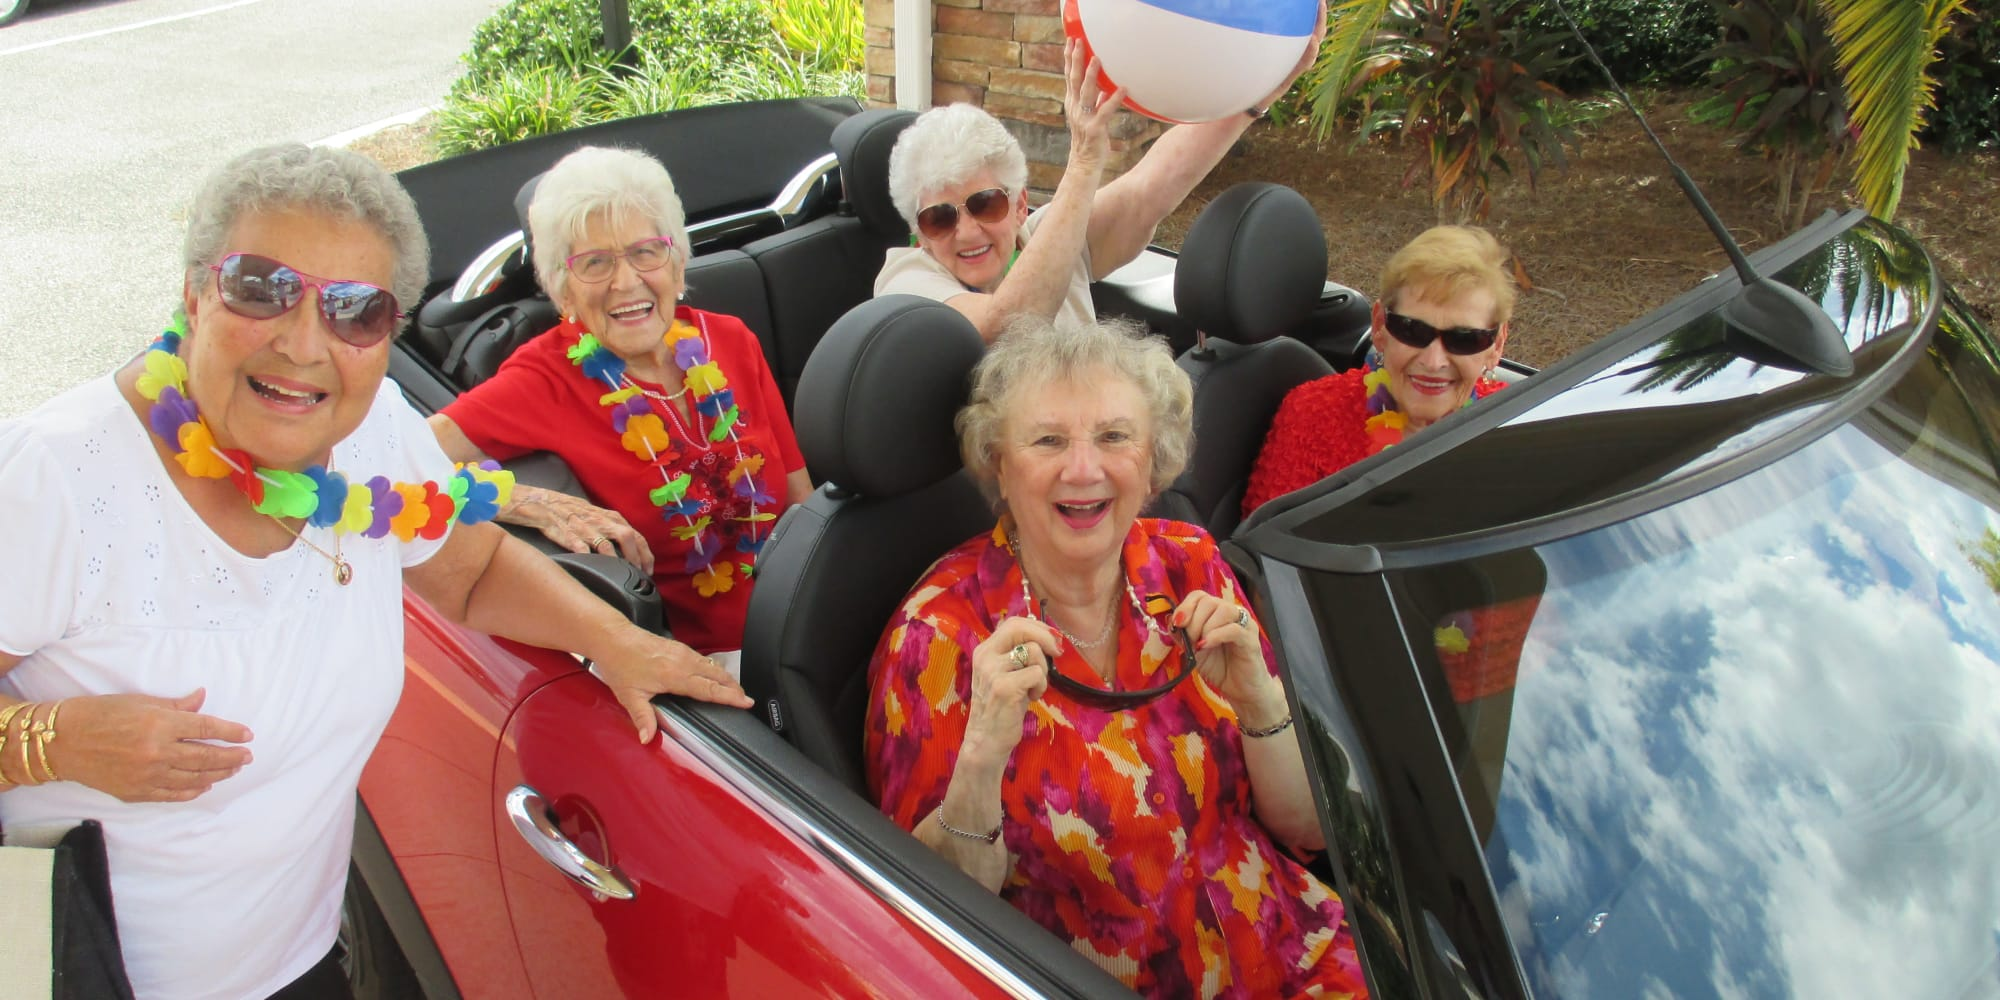 Residents dressed in tropical clothing in a car at Steeplechase Retirement Residence in Oxford, Florida